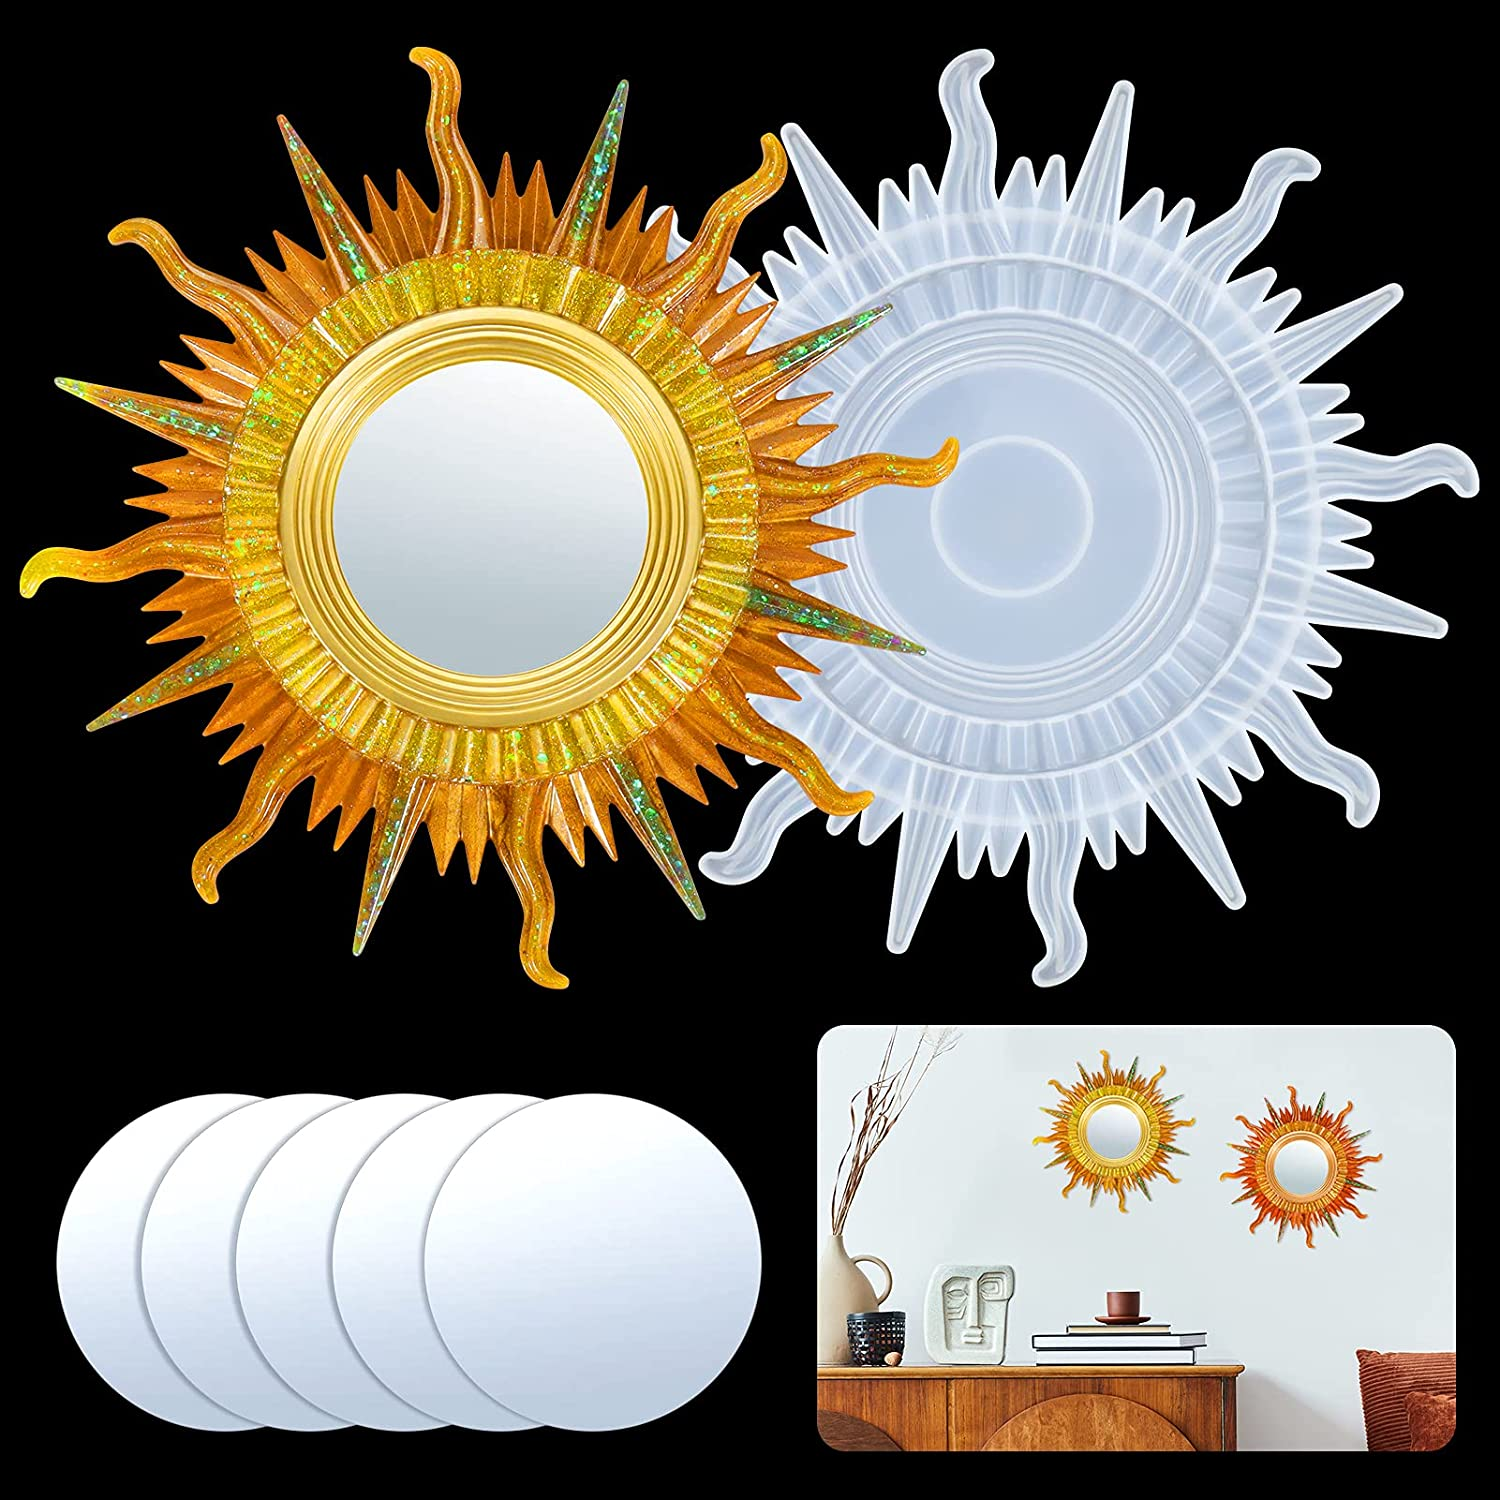 Juome Resin Silicone Mold, Wall Mirror Mold for Epoxy Resin, Sunburst Round Mirror Epoxy Casting Mold for Wall/Room/Home Decor, Decorative Circle Mirrors Mould, DIY Clay Crafts